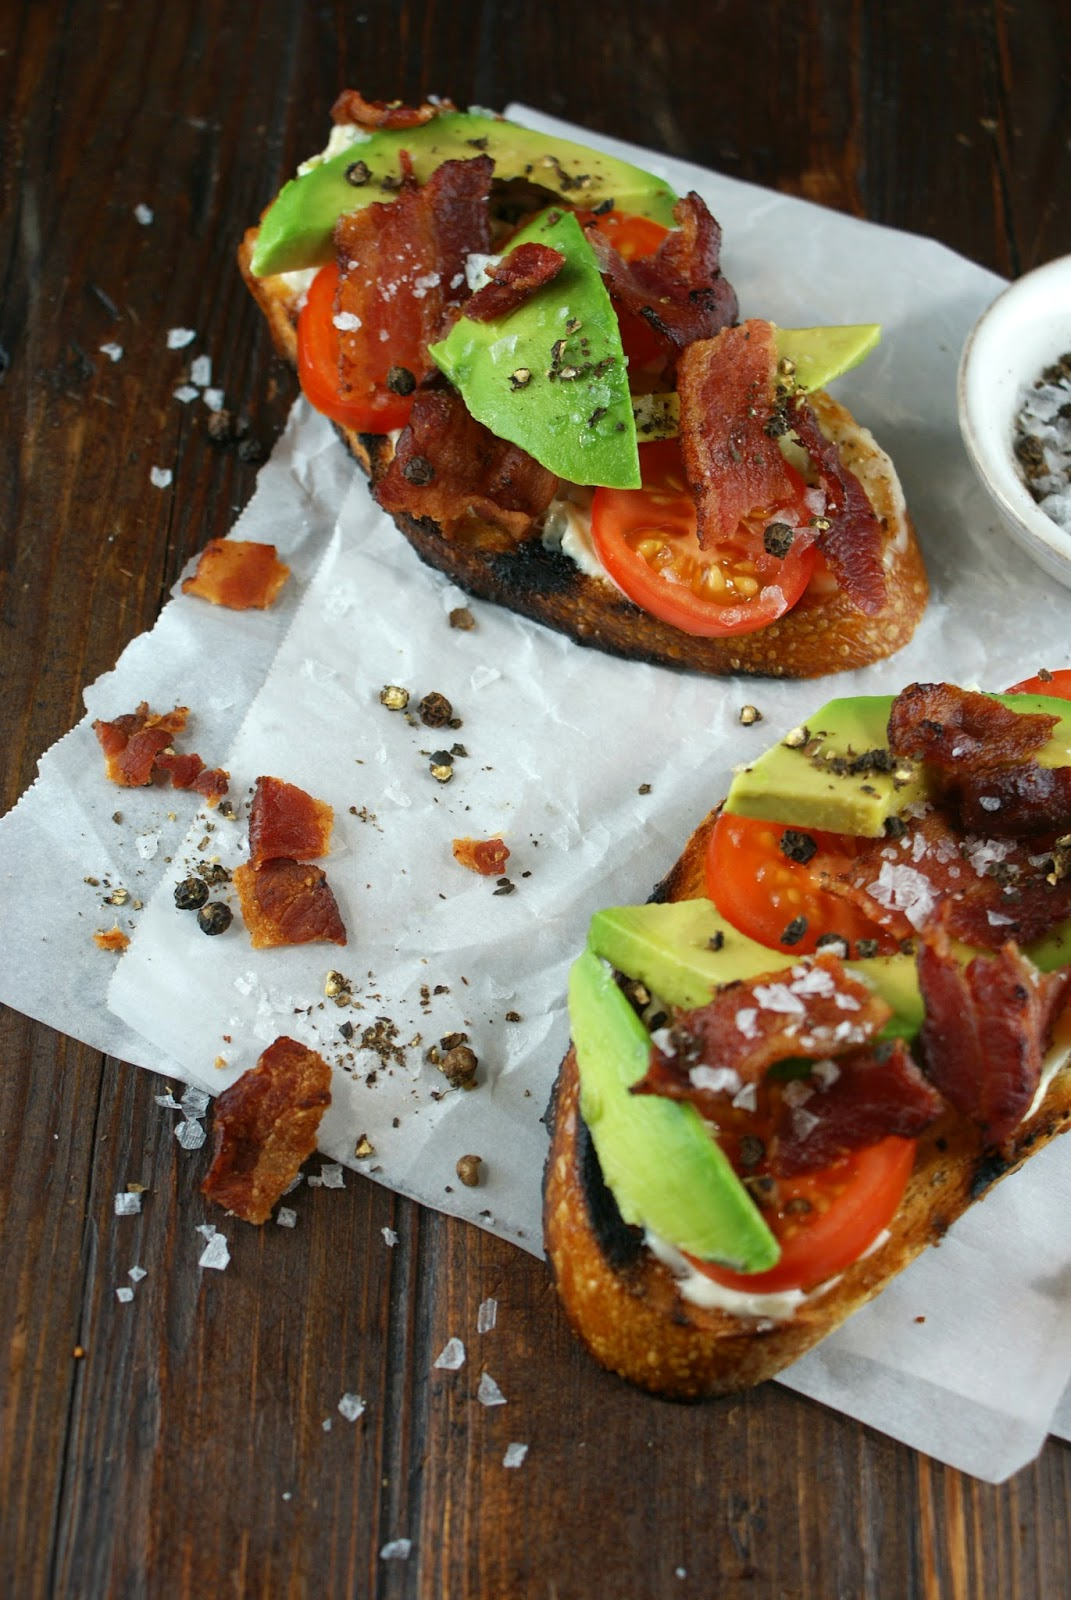 ... Gourmet: Avocado, Bacon and Tomato Tartines | Friday Night Bites